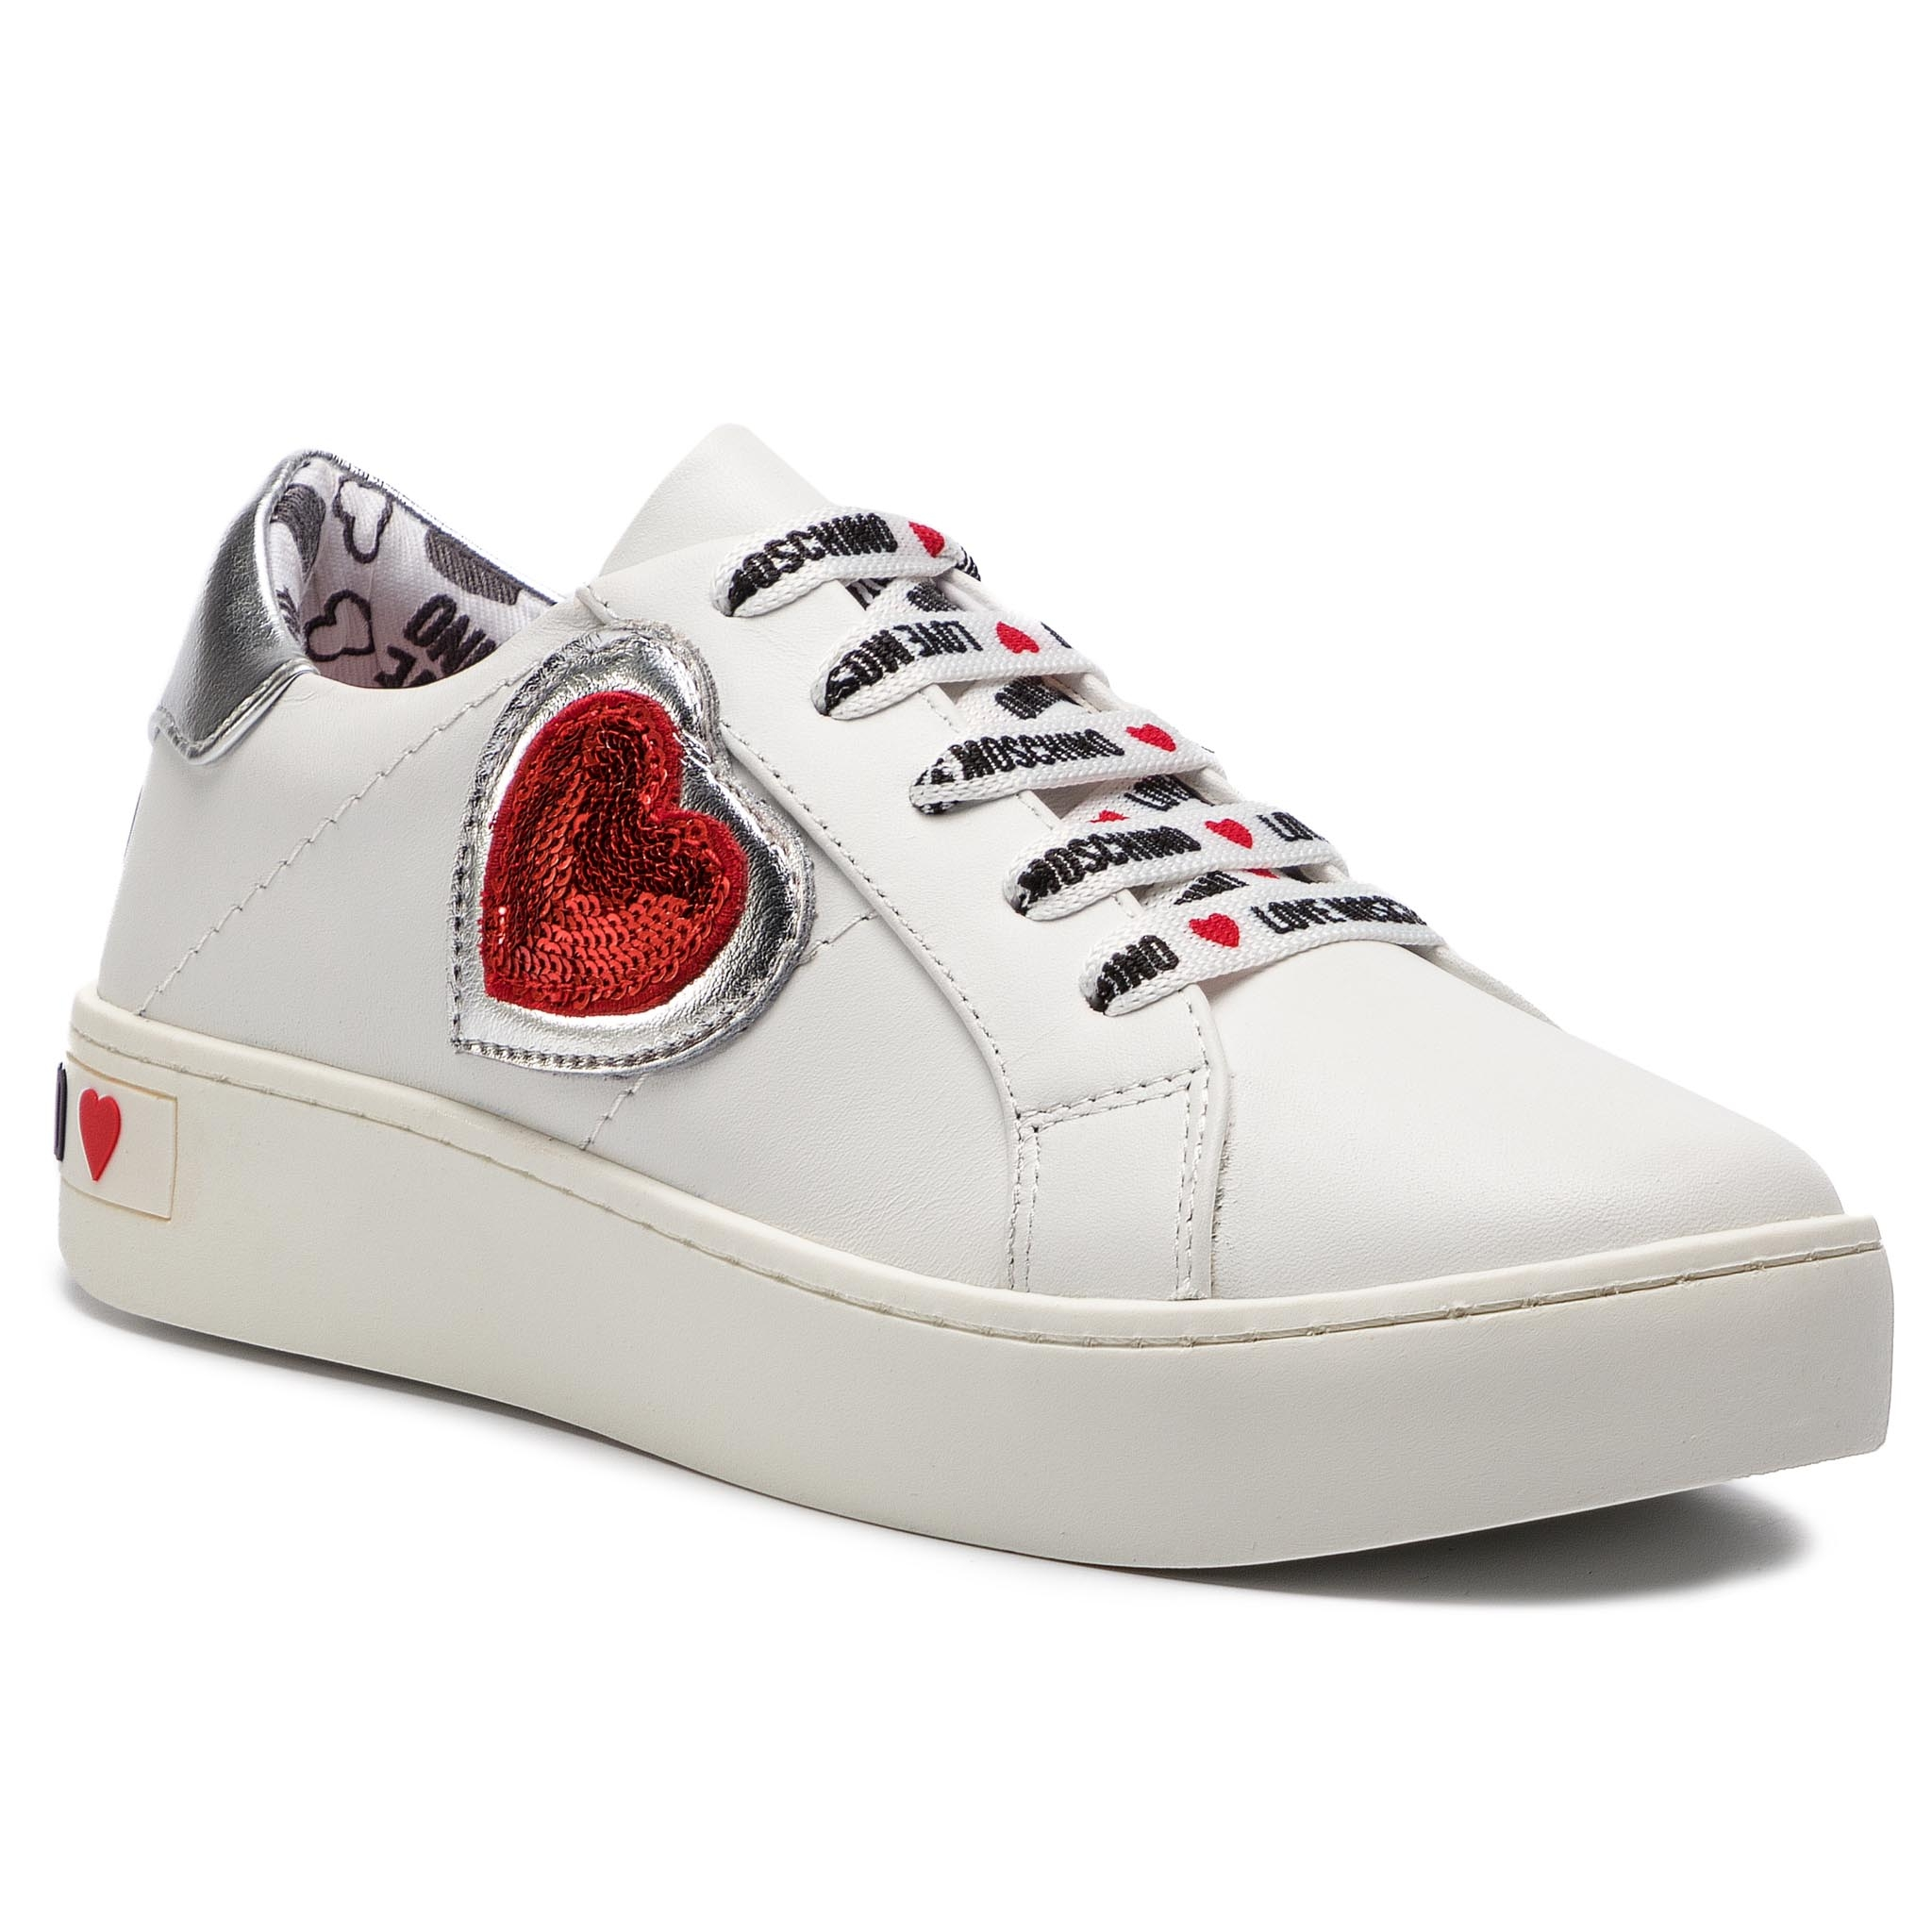 Sneakers LOVE MOSCHINO - JA15133G17IA310A Bianco/Argen